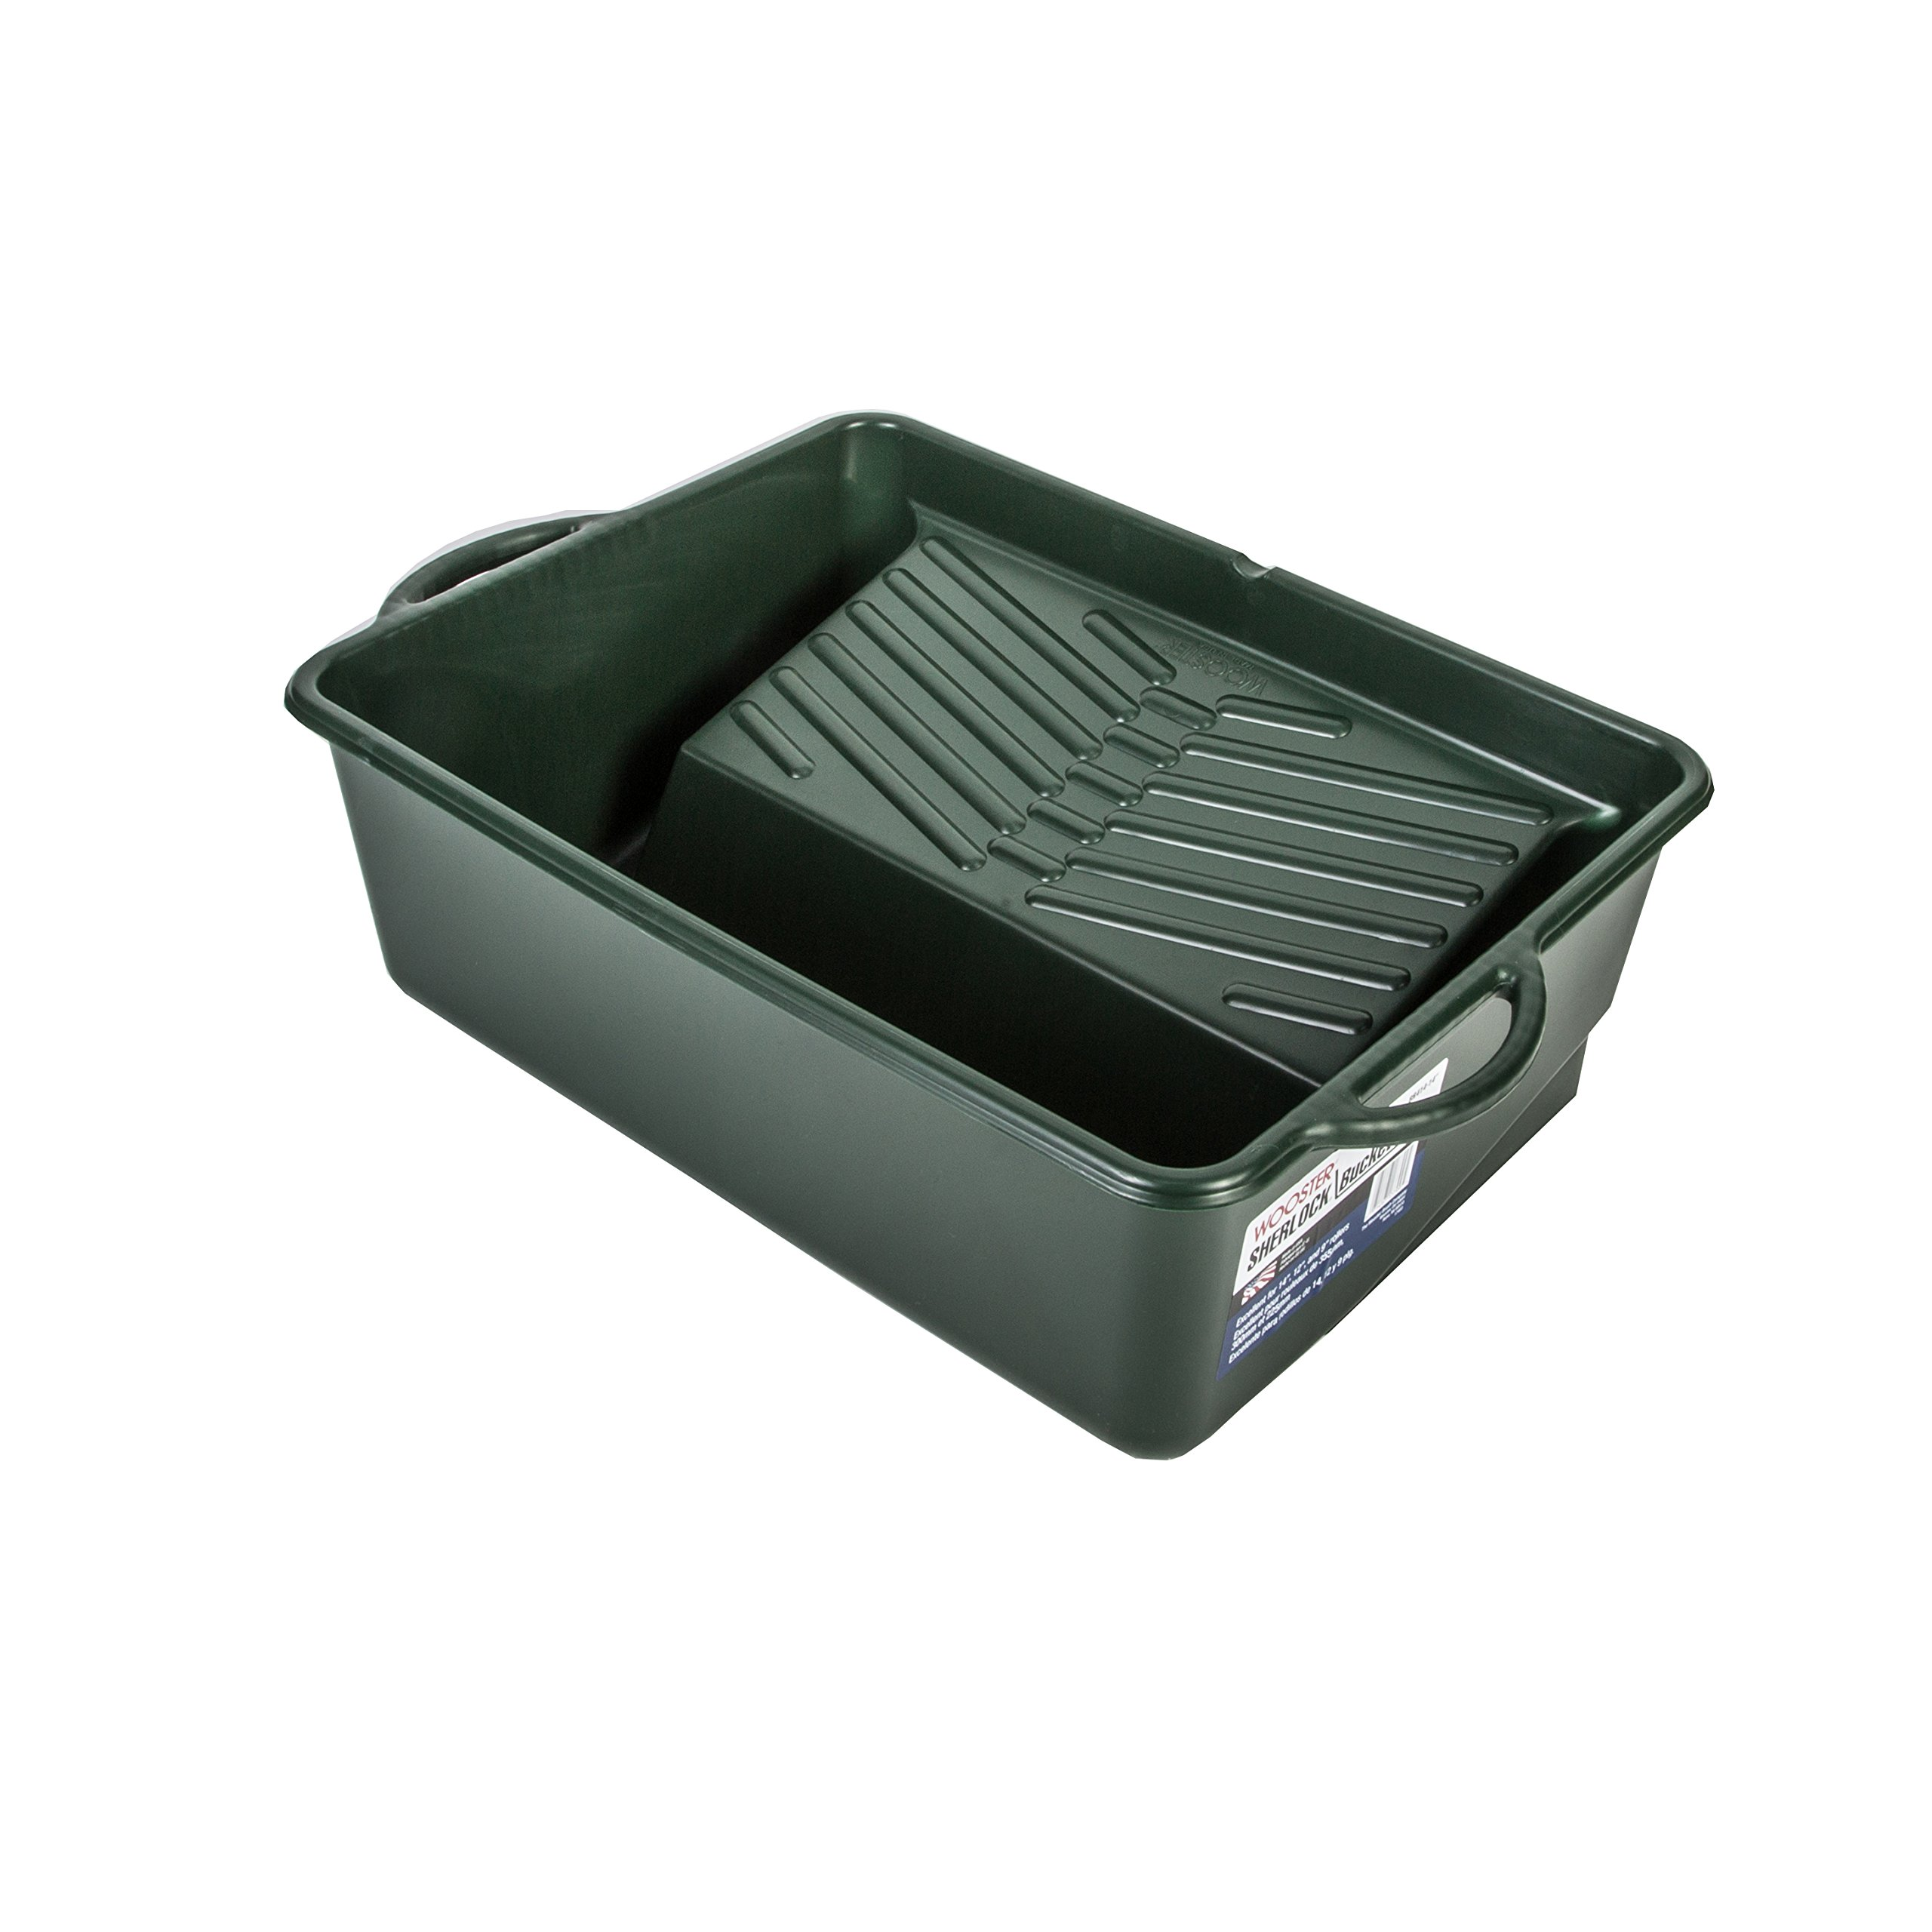 Wooster Brush BCKT PLSTC BR414-14 Paint Bucket Tray Plastic by Wooster Brush